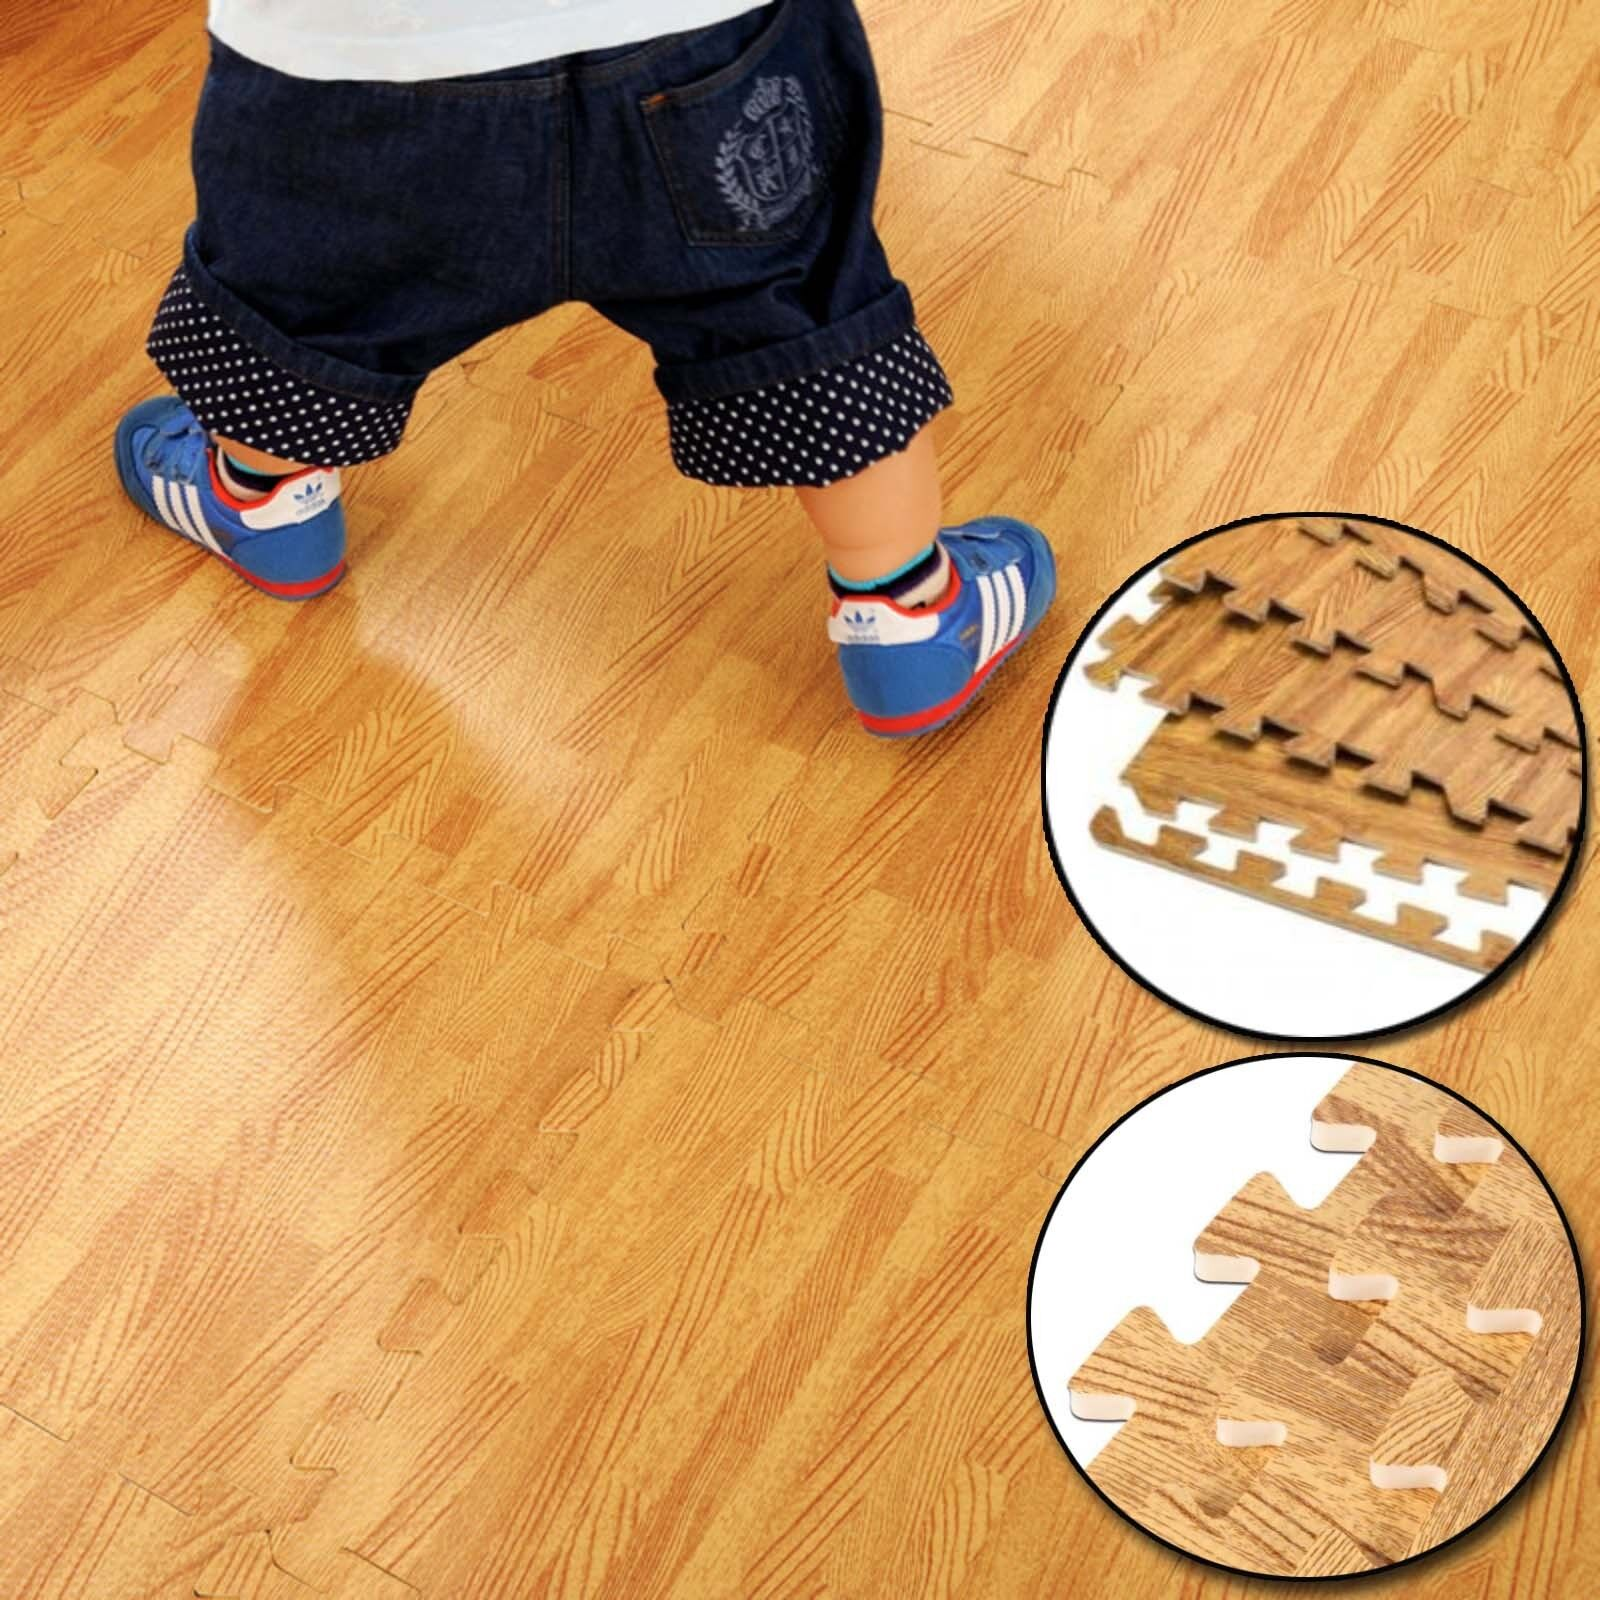 Wood Floor Padding Wood Foam Floor: WOOD EFFECT INTERLOCKING GYM PLAY HOME WORKOUT SOFT TILES